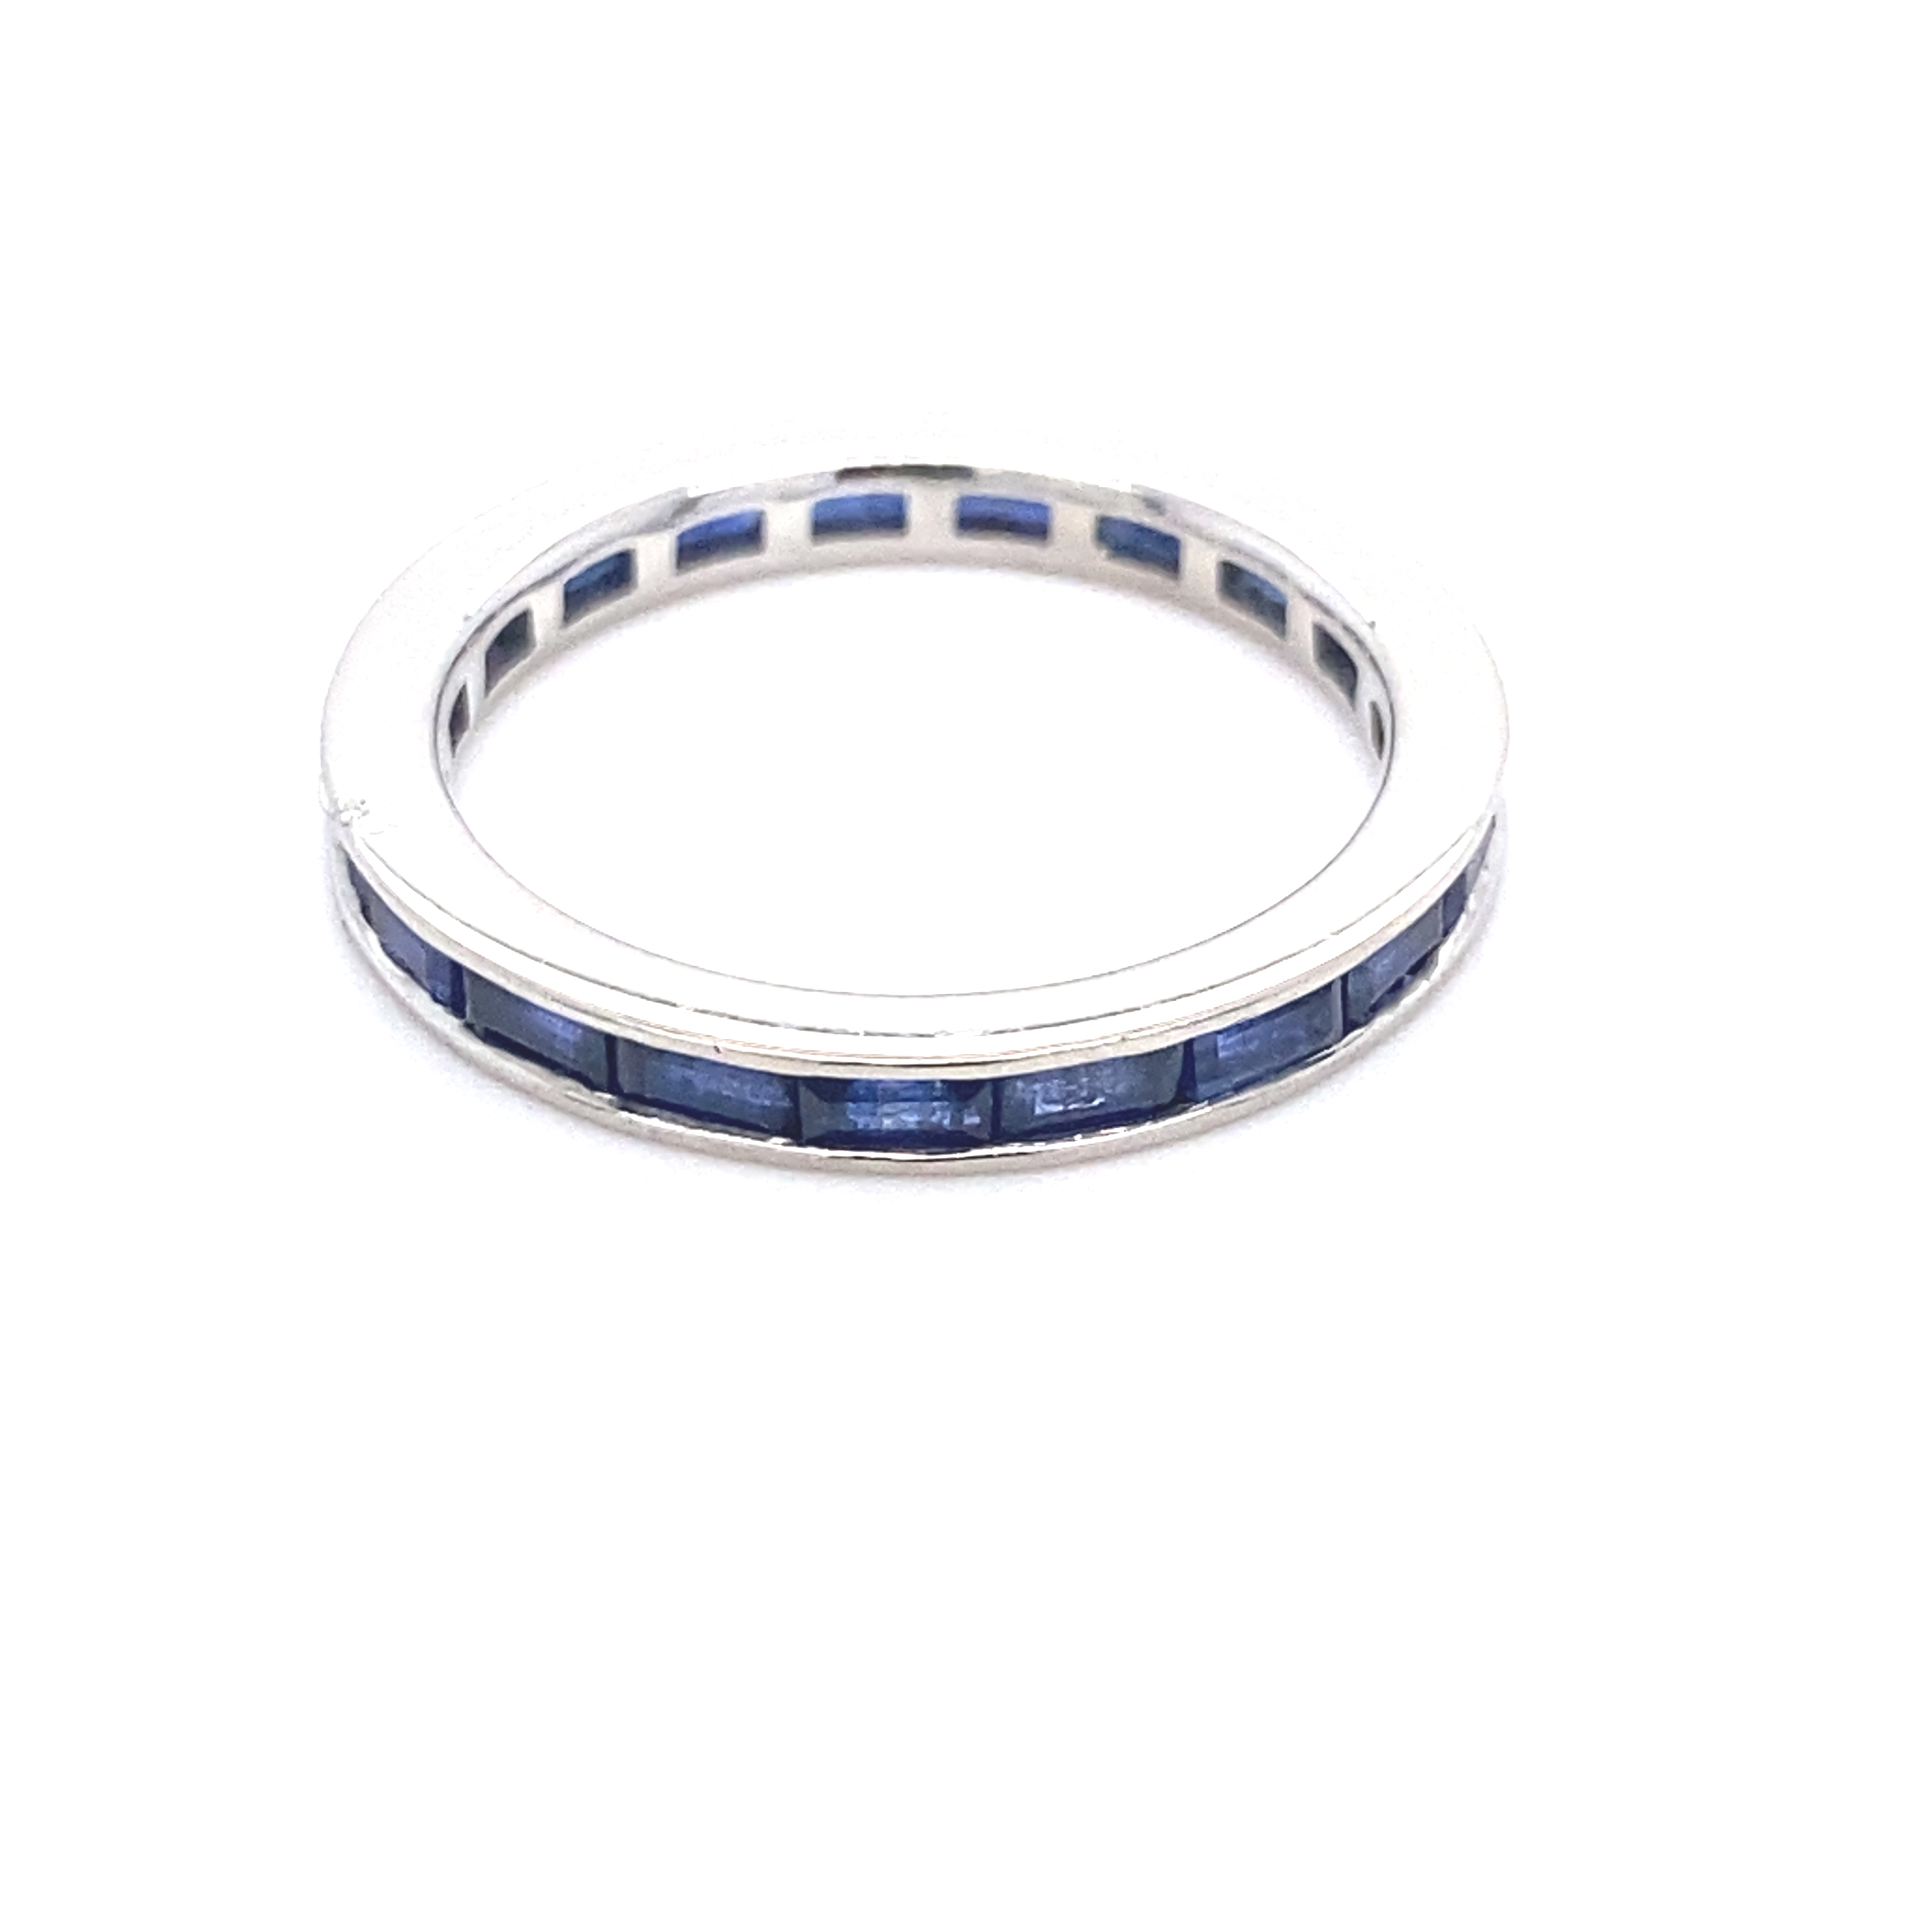 A baguette sapphire and platinum full eternity ring